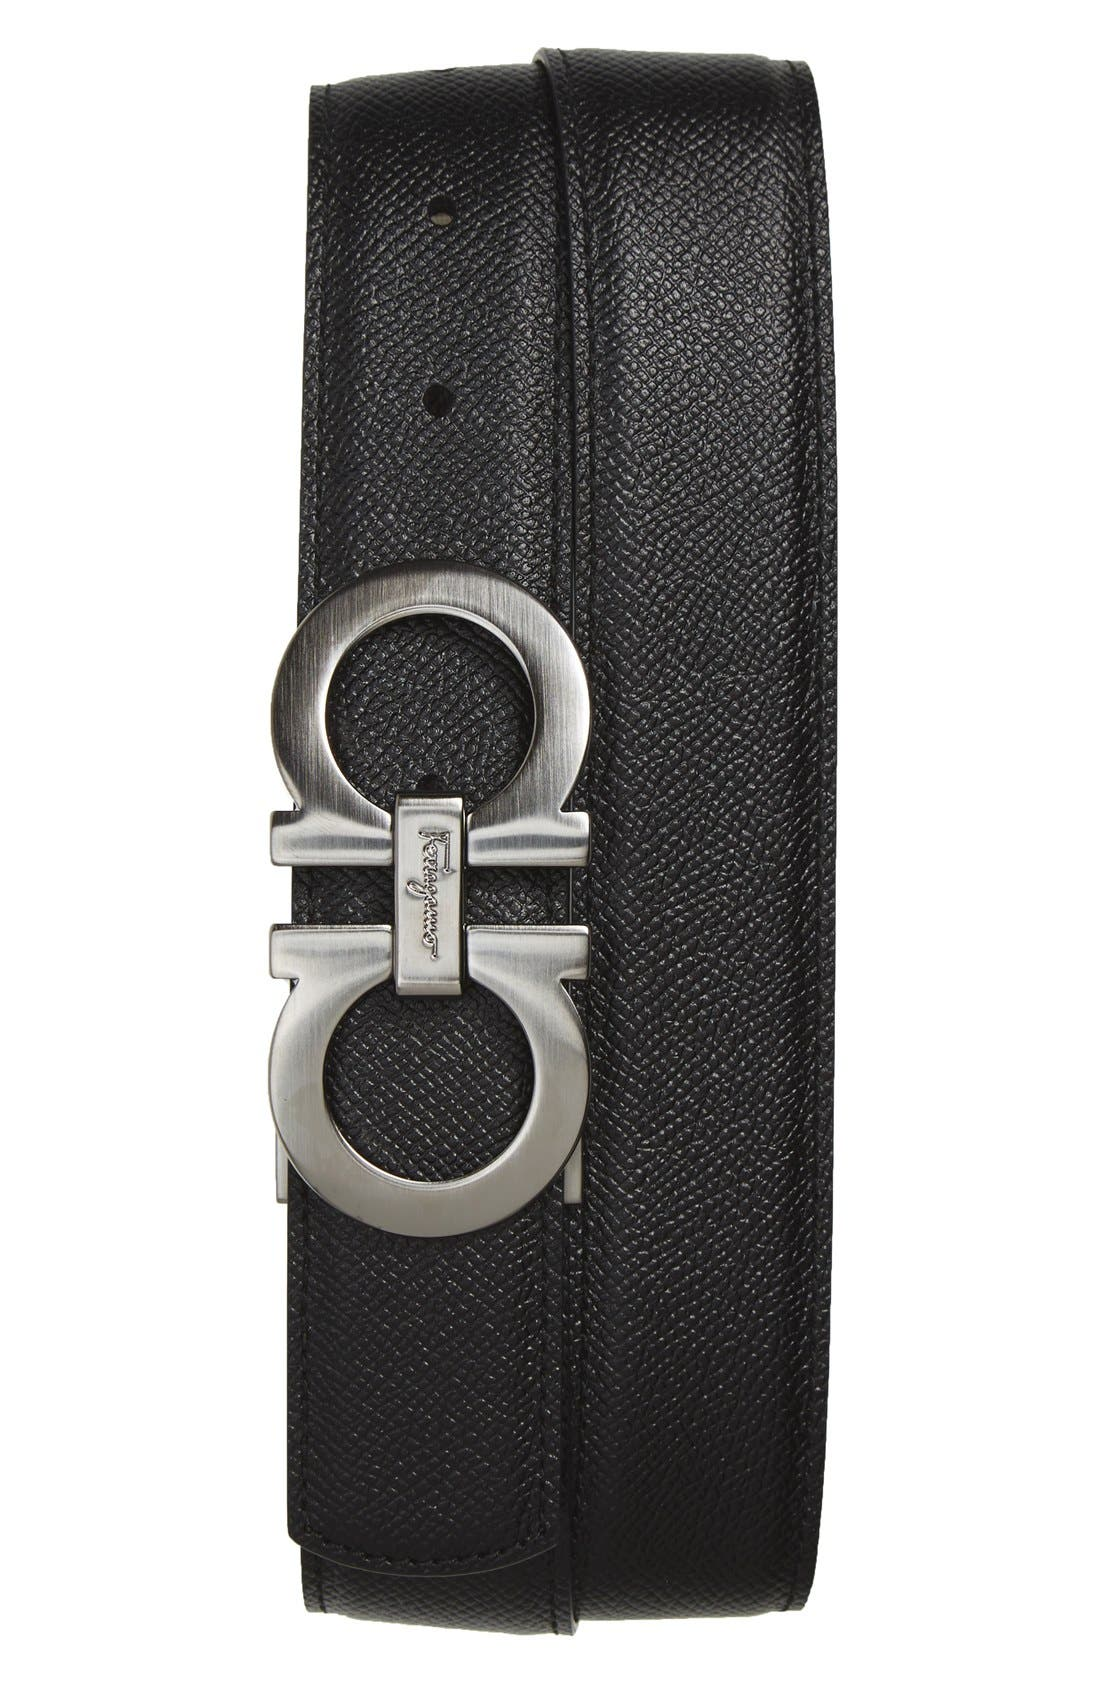 Salvatore Ferragamo Reversible Double Gancini Calfskin Leather Belt